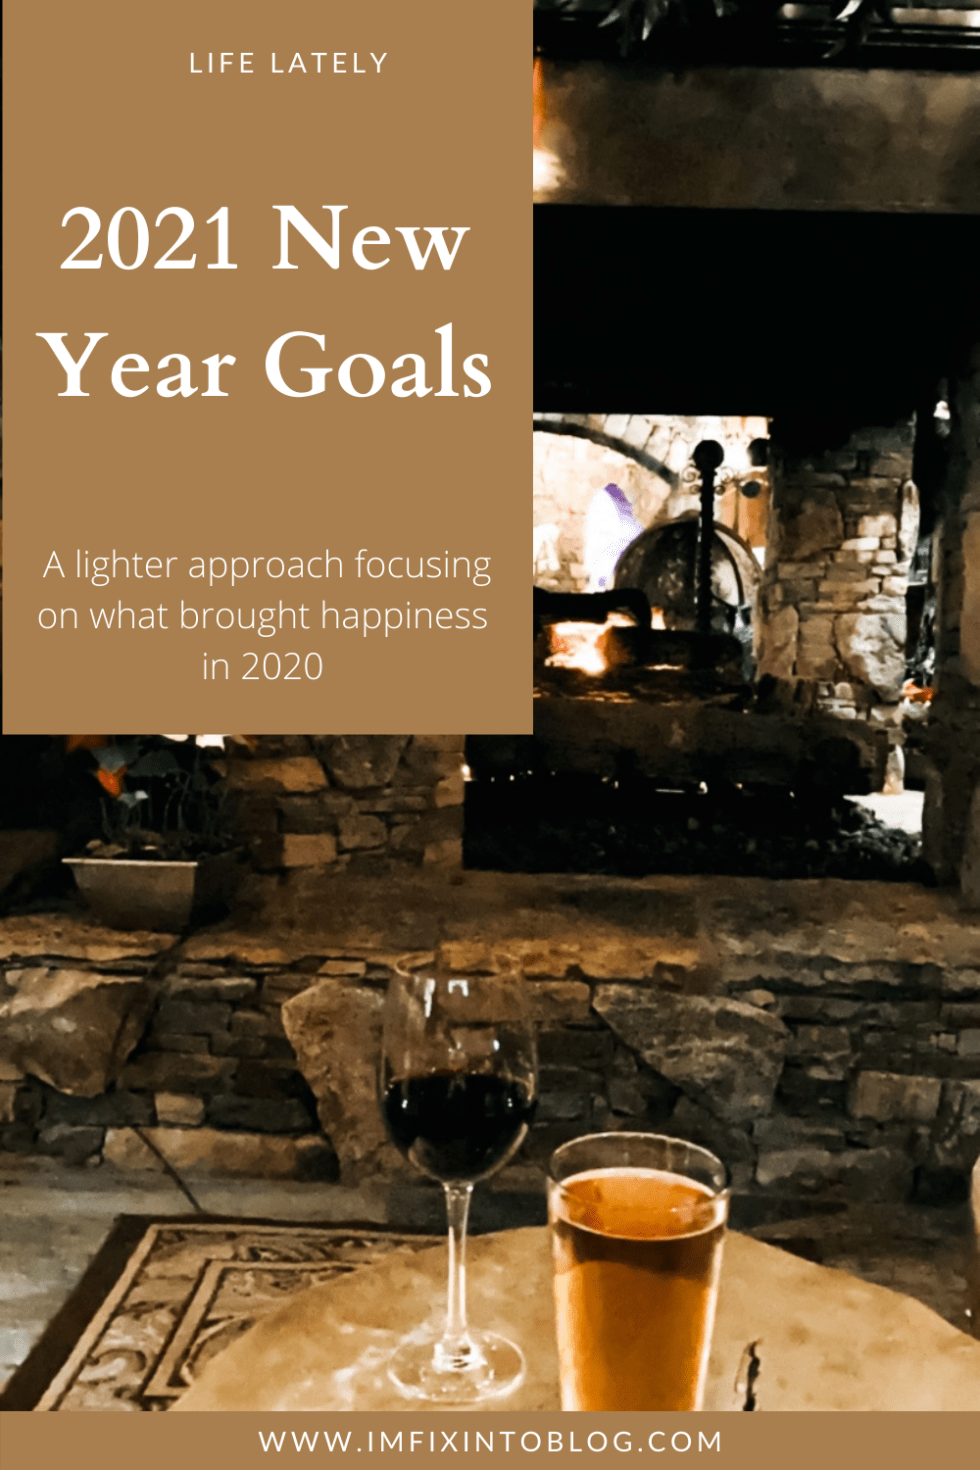 2021 New Year Goals - I'm Fixin' To - @imfixintoblog   New Year Goals by popular NC lifestyle blog, I'm Fixin' To: Pinterest image of a glass of wine and a glass of beer on a log stump table in front of a stone fireplace.